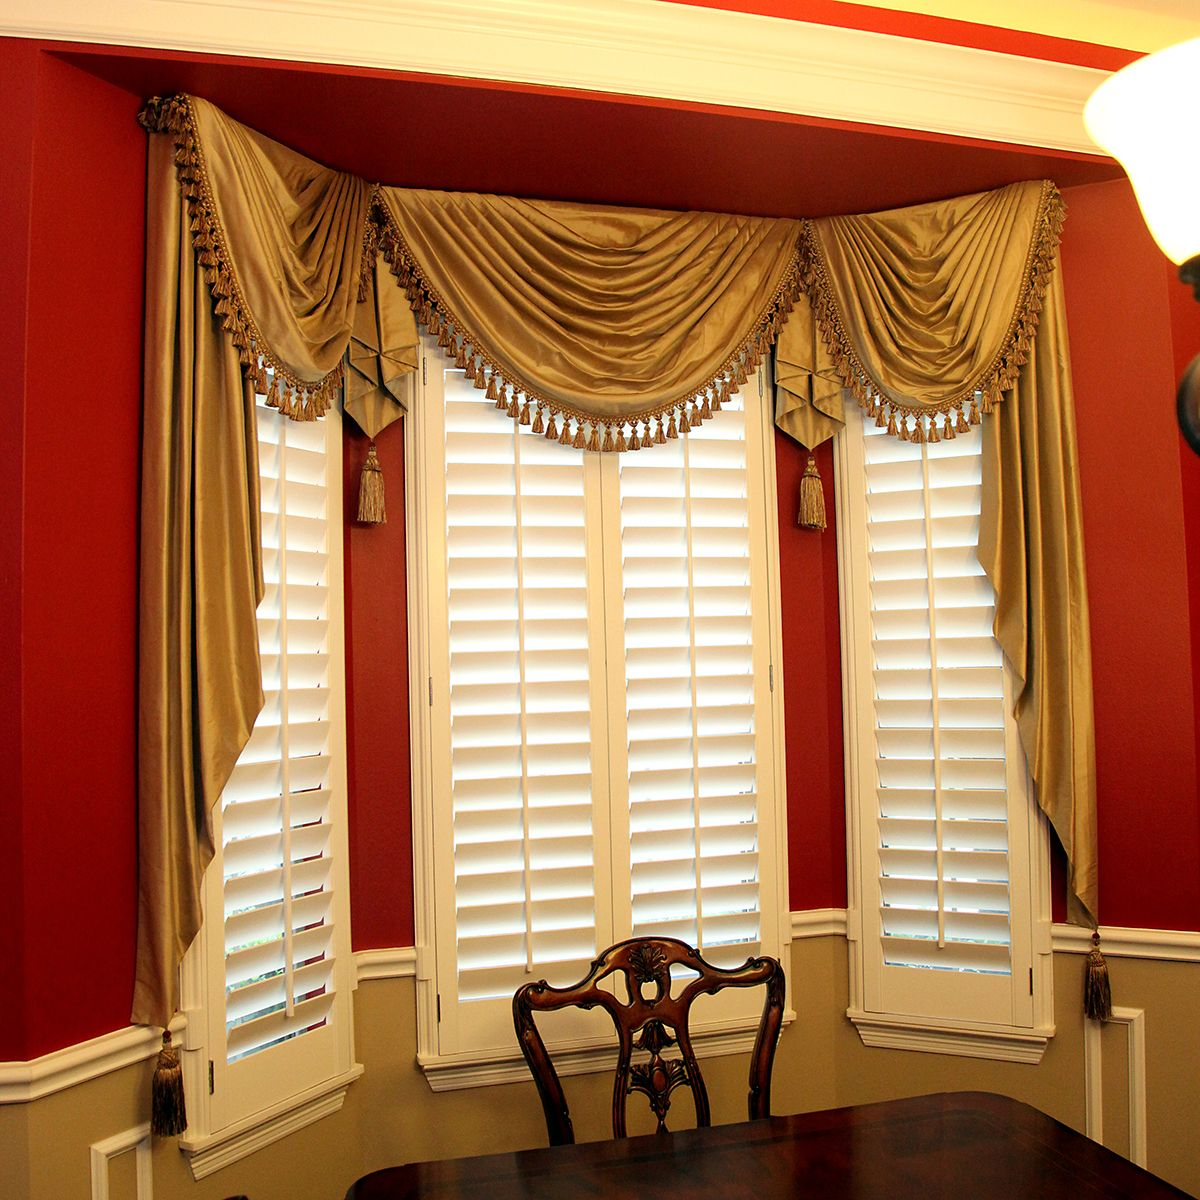 This gorgeous golden valance with tassels is right at home in this traditional dining room. Designed by Mary Allen Yelverton in Houston, TX. See her for free drapery design services.